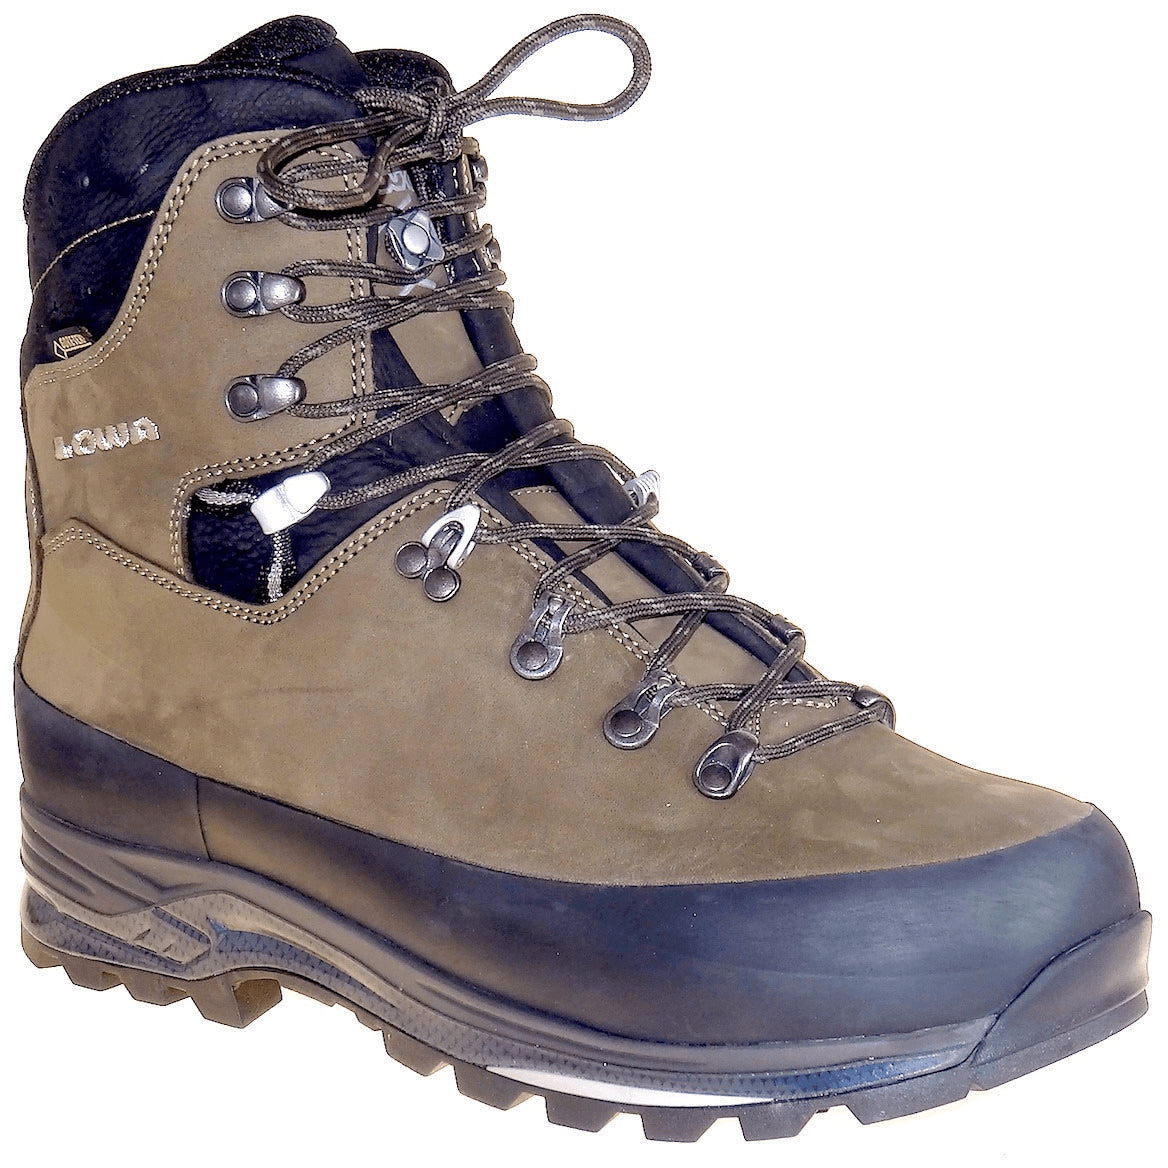 LOWA, Tibet GTX, WXL-Wide Fit, Men's, Sepia/Black Hiking Boots LOWA Sepia/Black 6.5UK